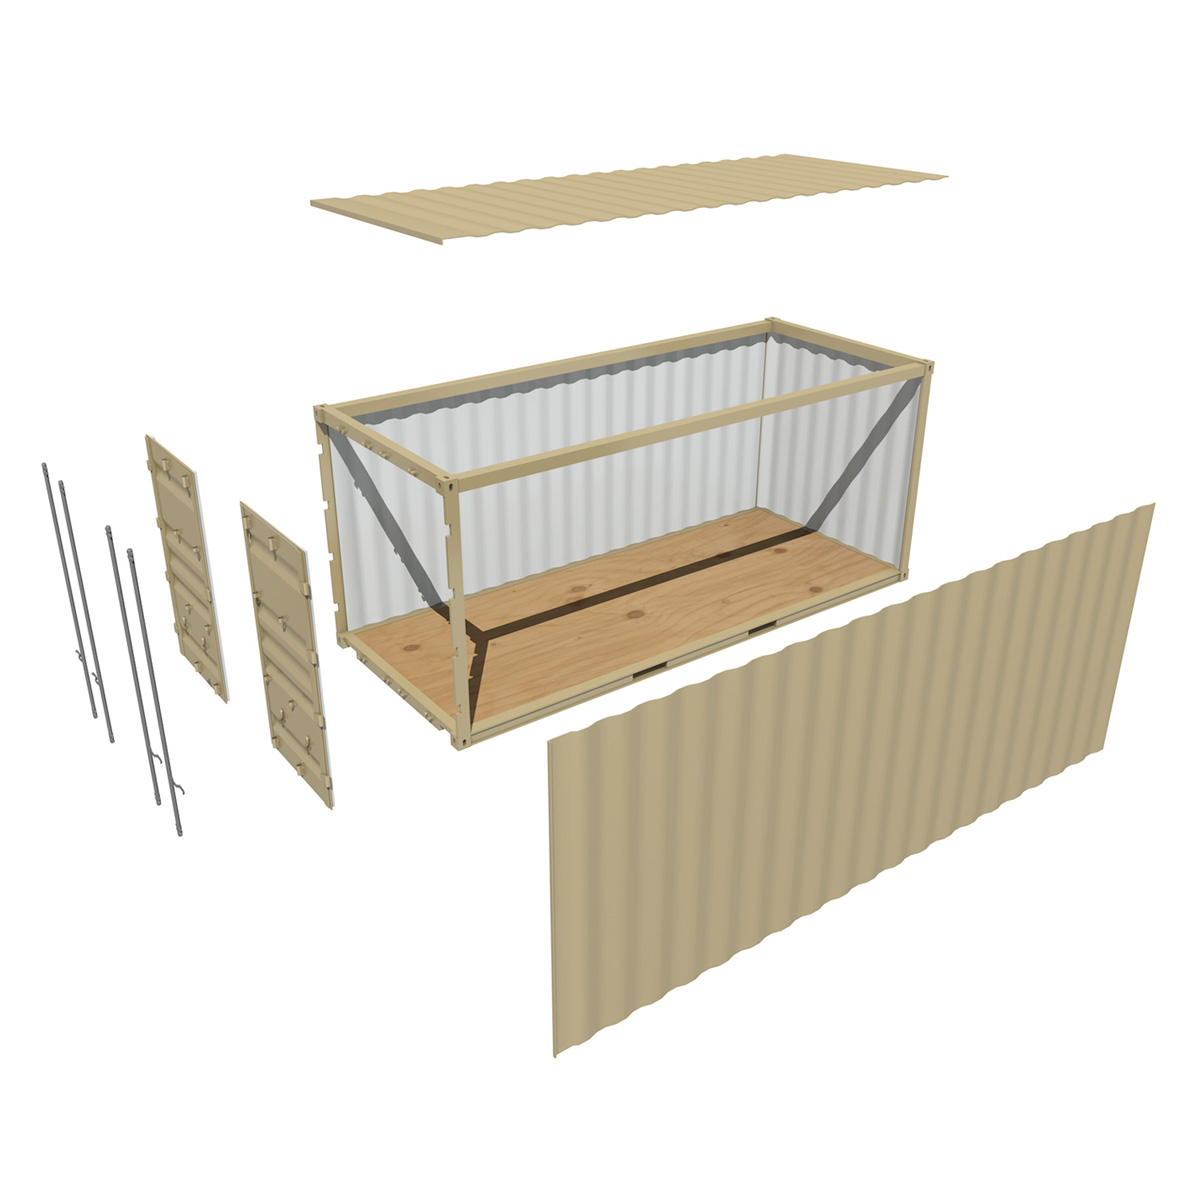 20ft shipping container 3d model 3ds fbx c4d lwo obj 252260